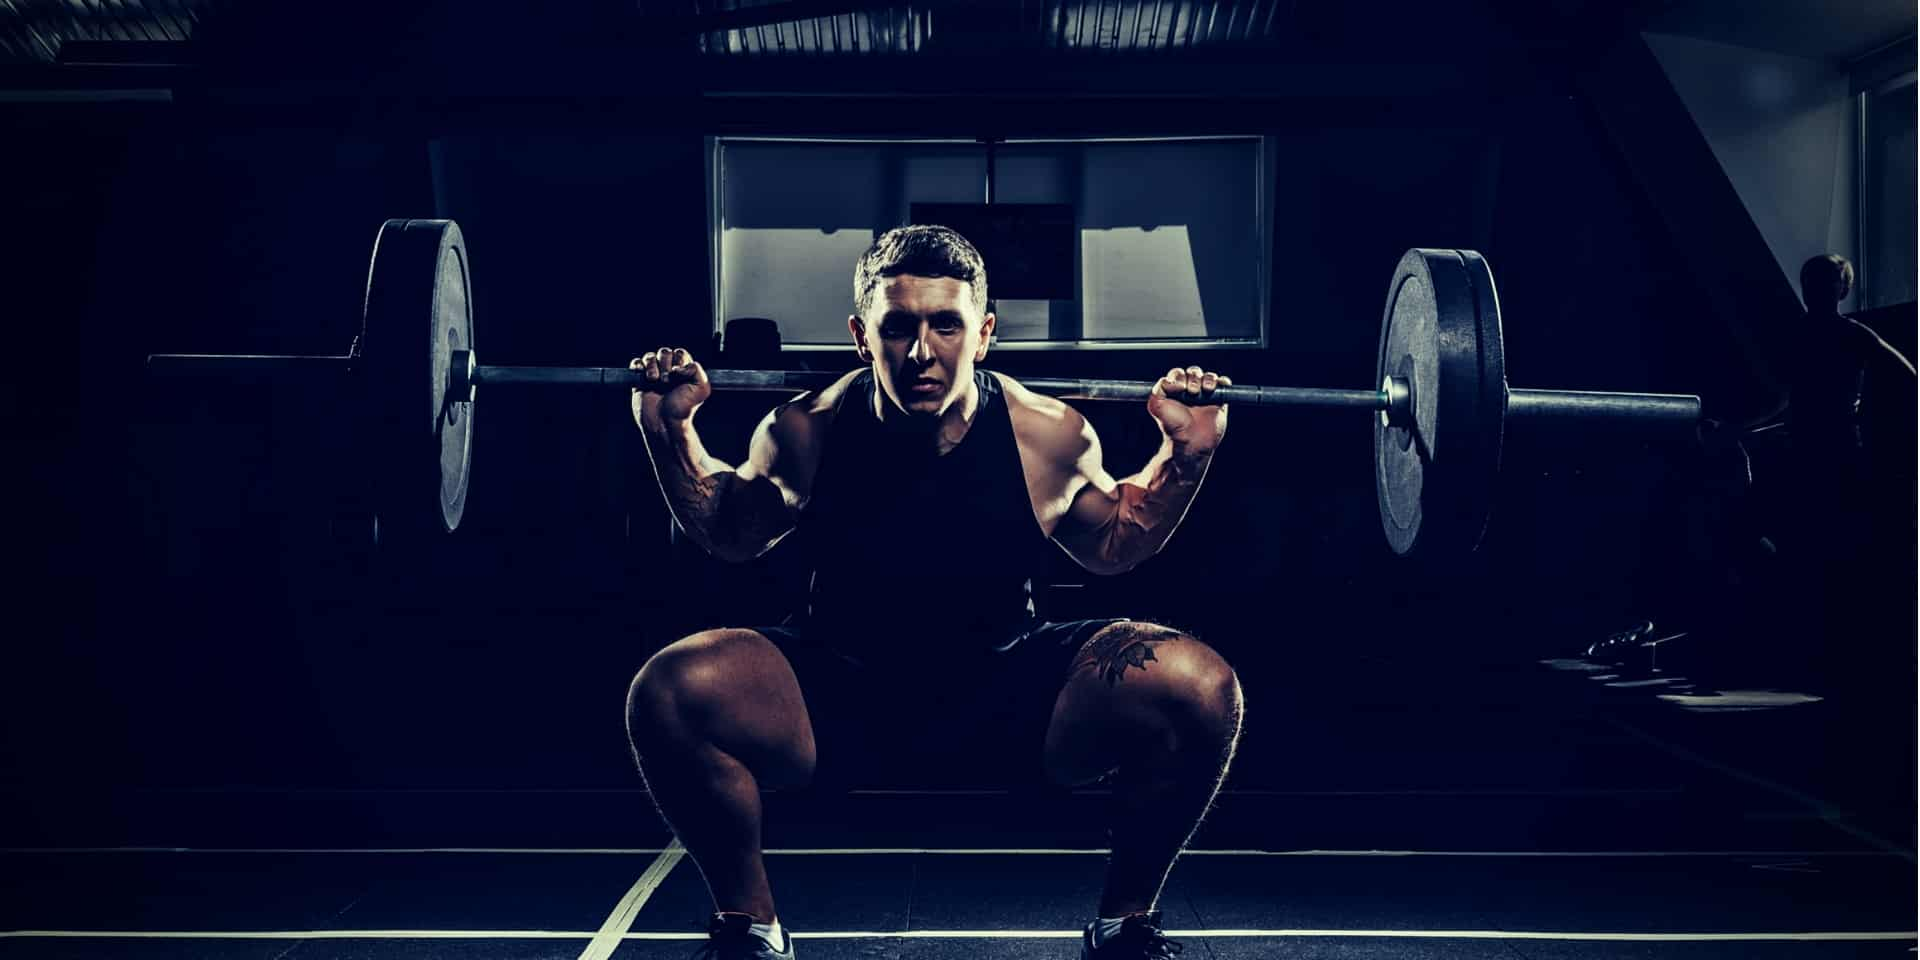 Compound Lifts or Isolation Exercises sportsman lifting a barbell